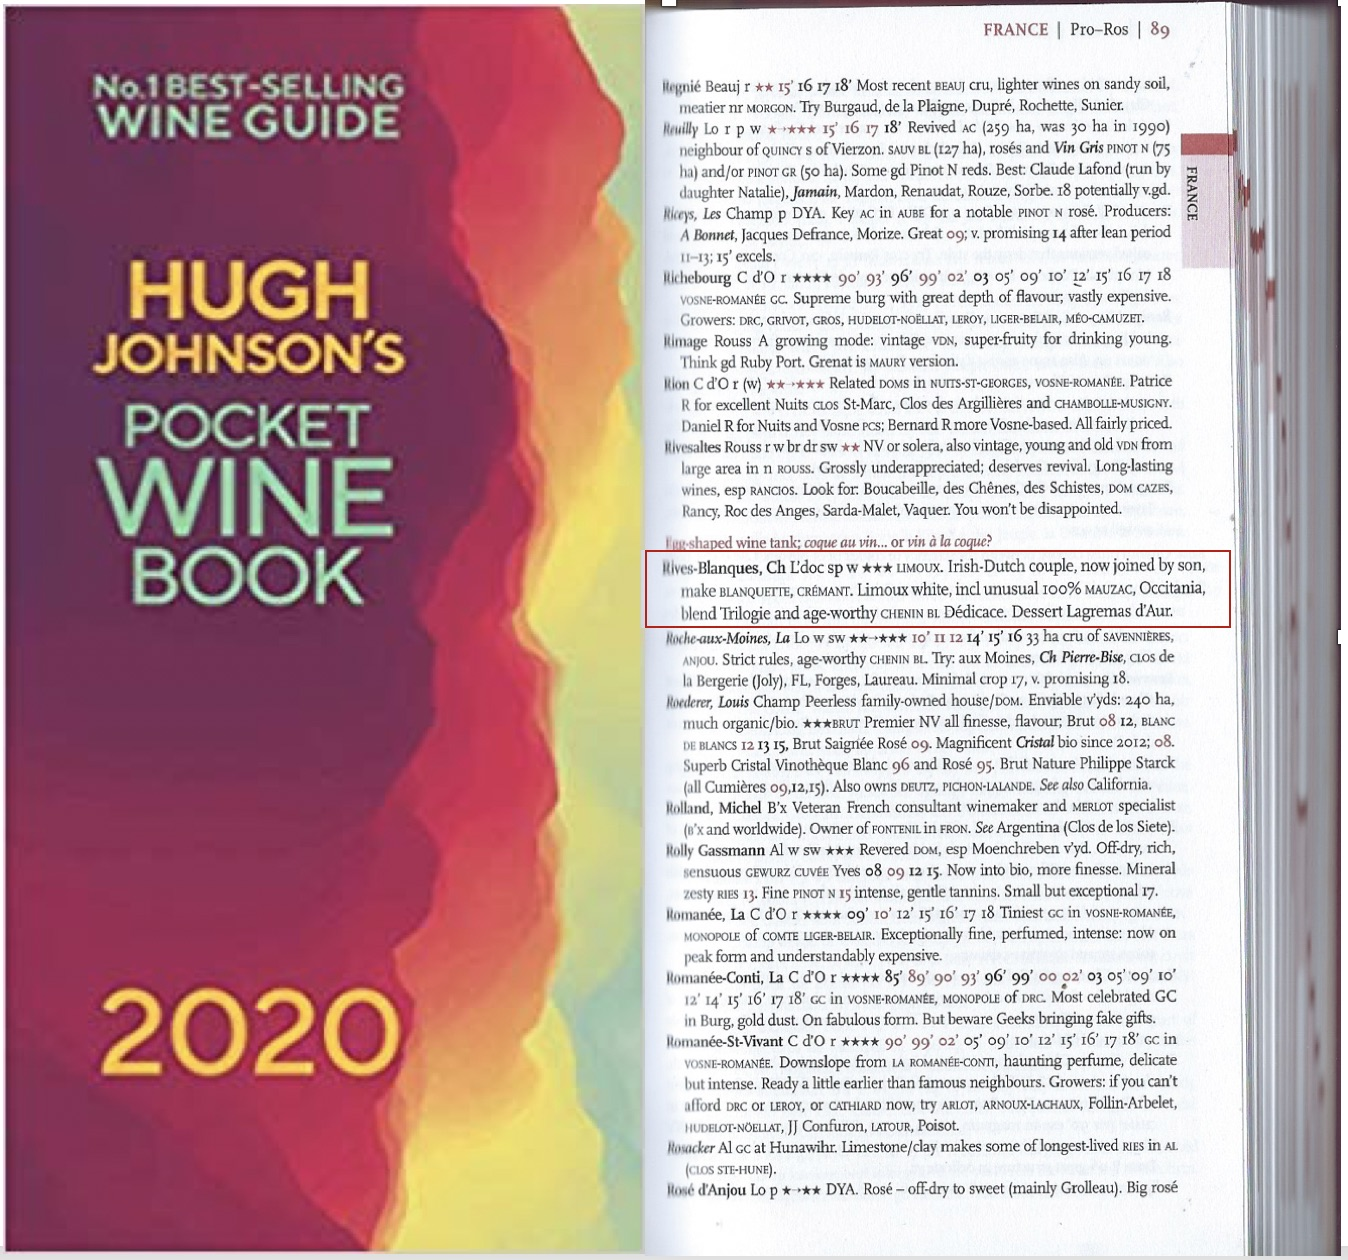 Best Seller Books 2020.September 2020 Rives Blanques Wines Recommended In Hugh